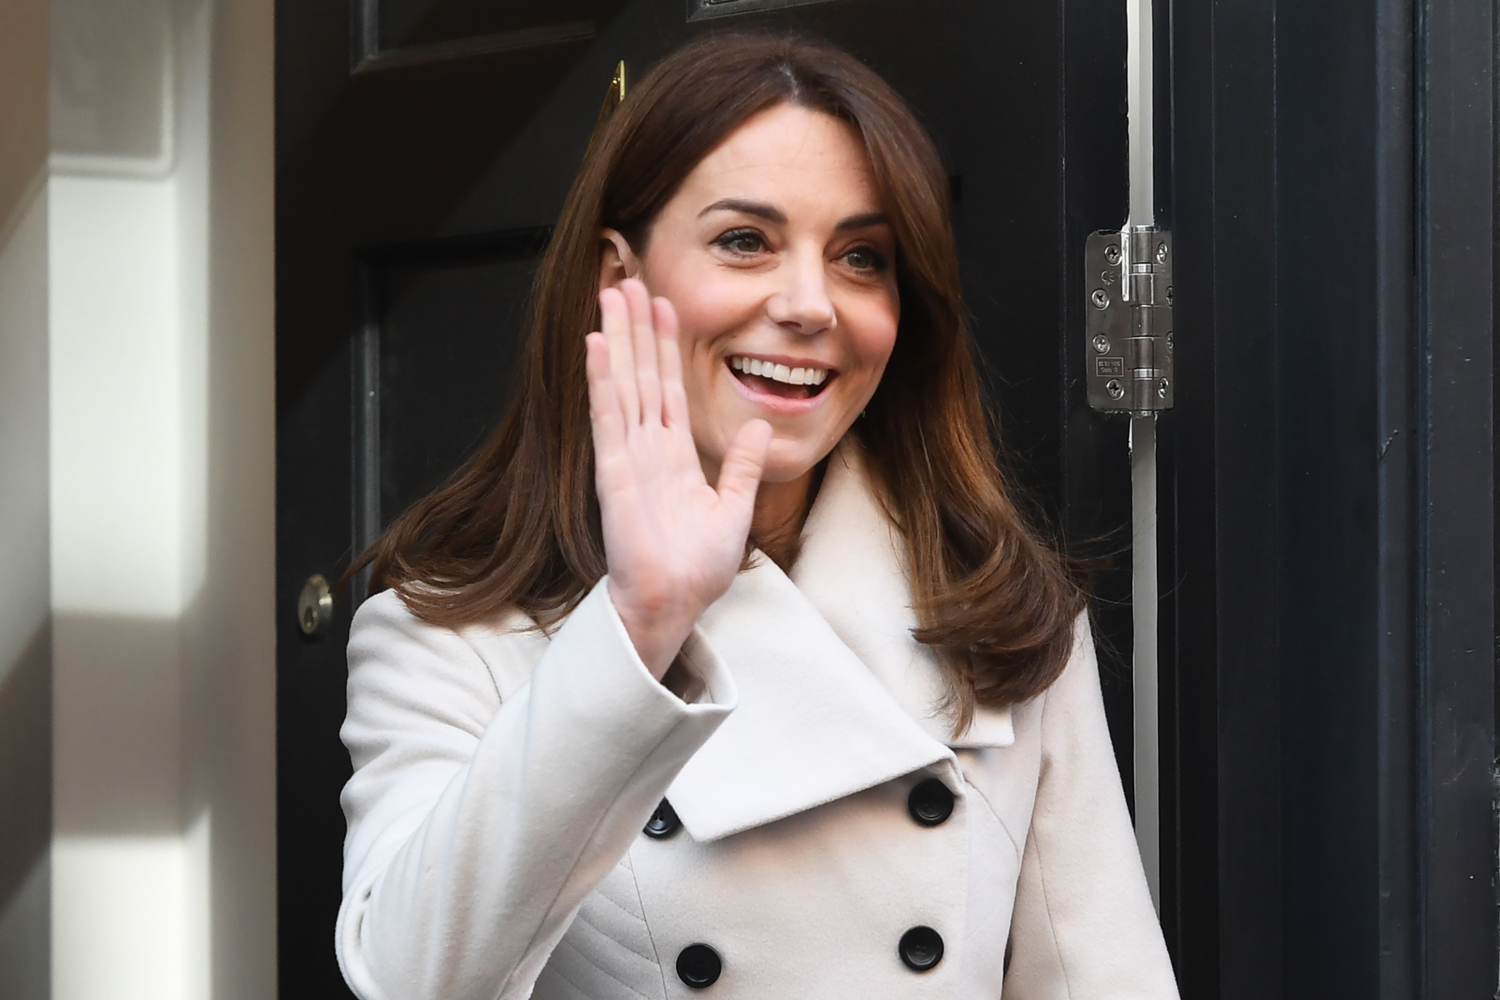 Kate Middleton Shared A Rare Look Inside Her Home And It's As Chic As You'd Expect